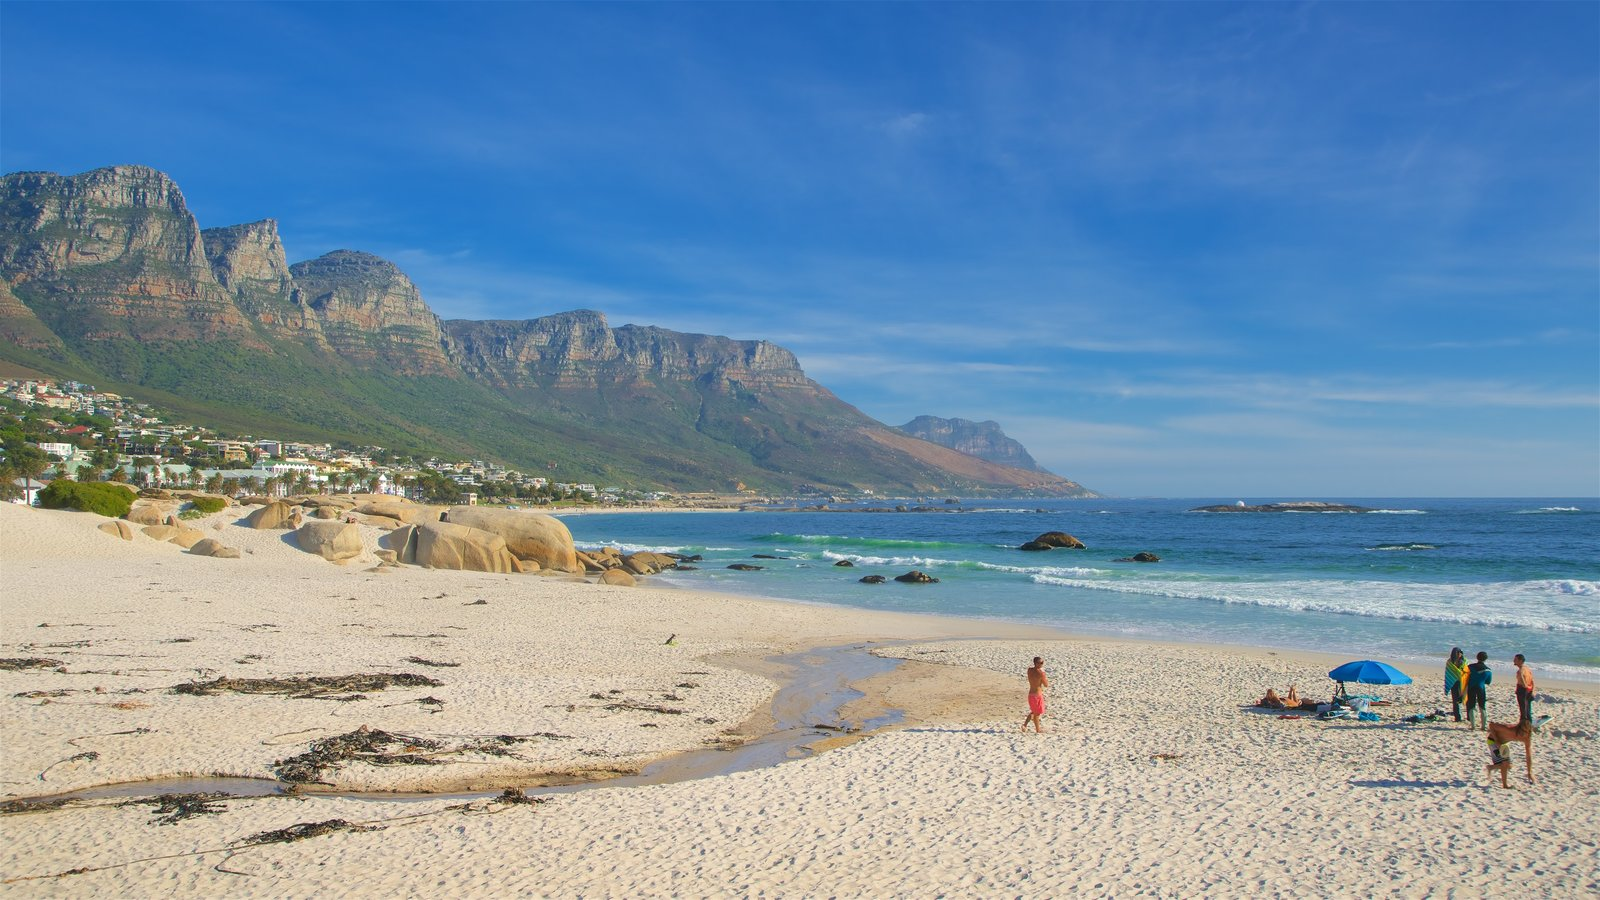 Camps Bay Beach which includes a beach and a coastal town as well as a family